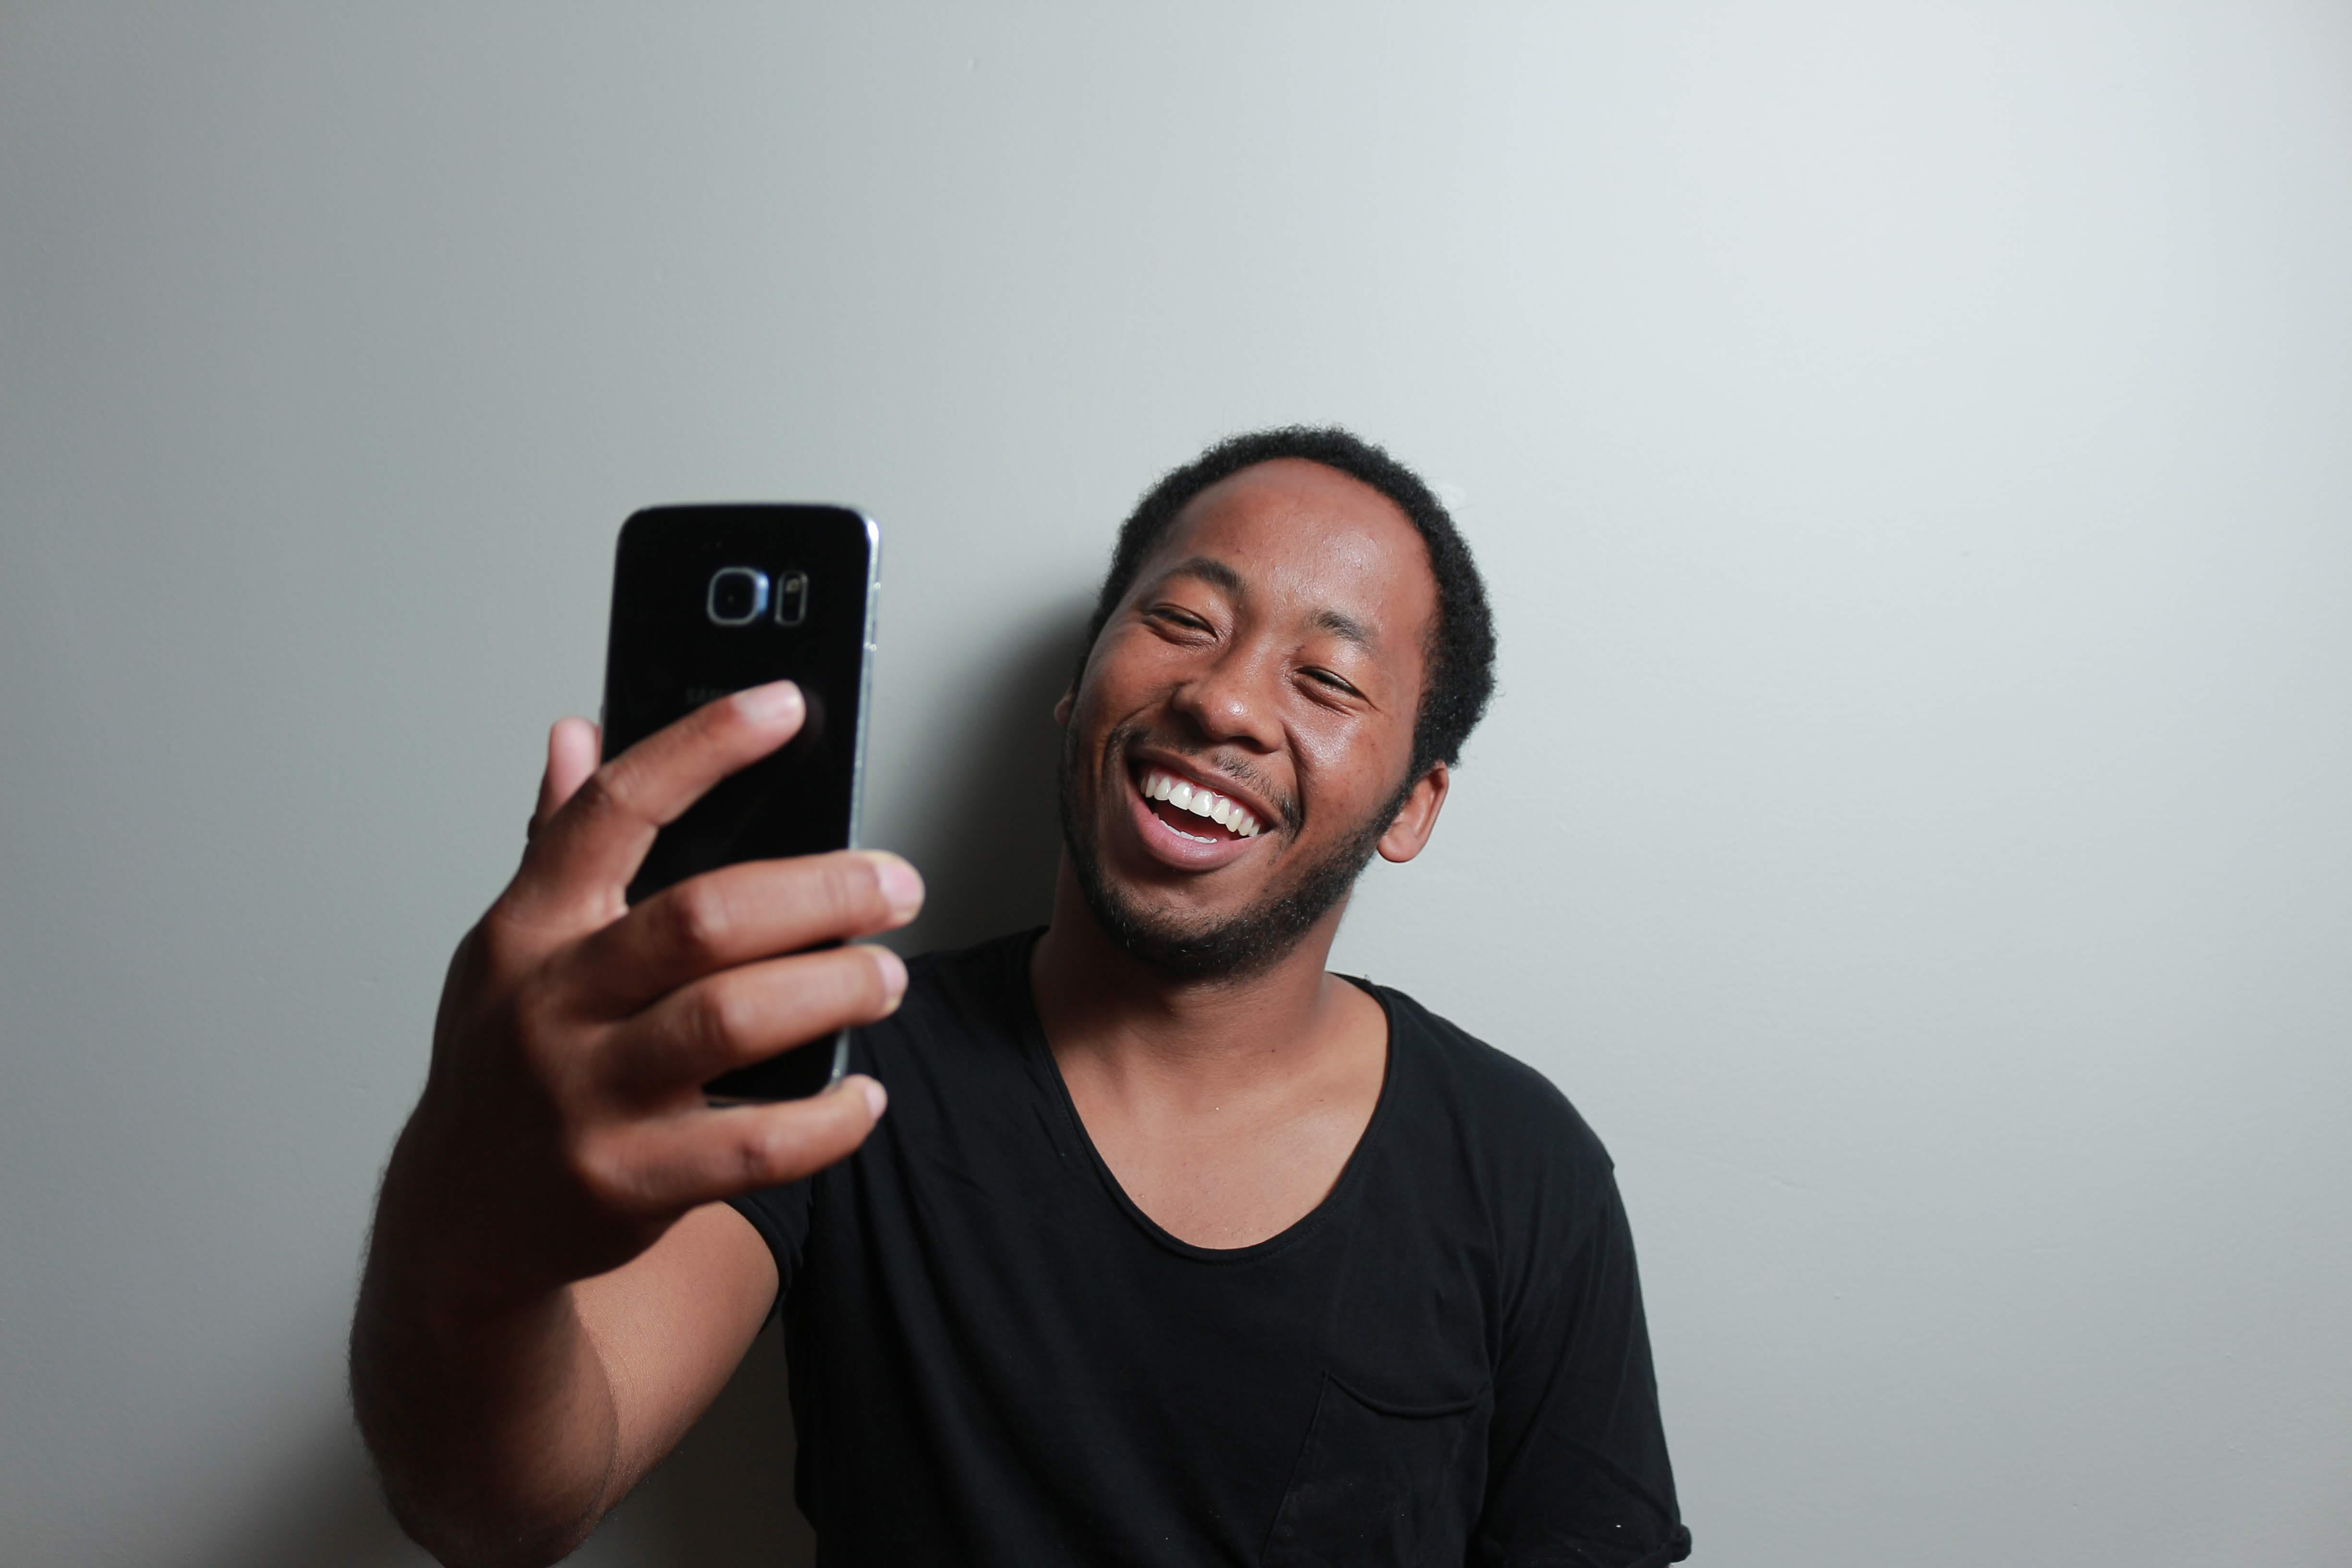 Man Holding Smartphone While Leaning on White Wall